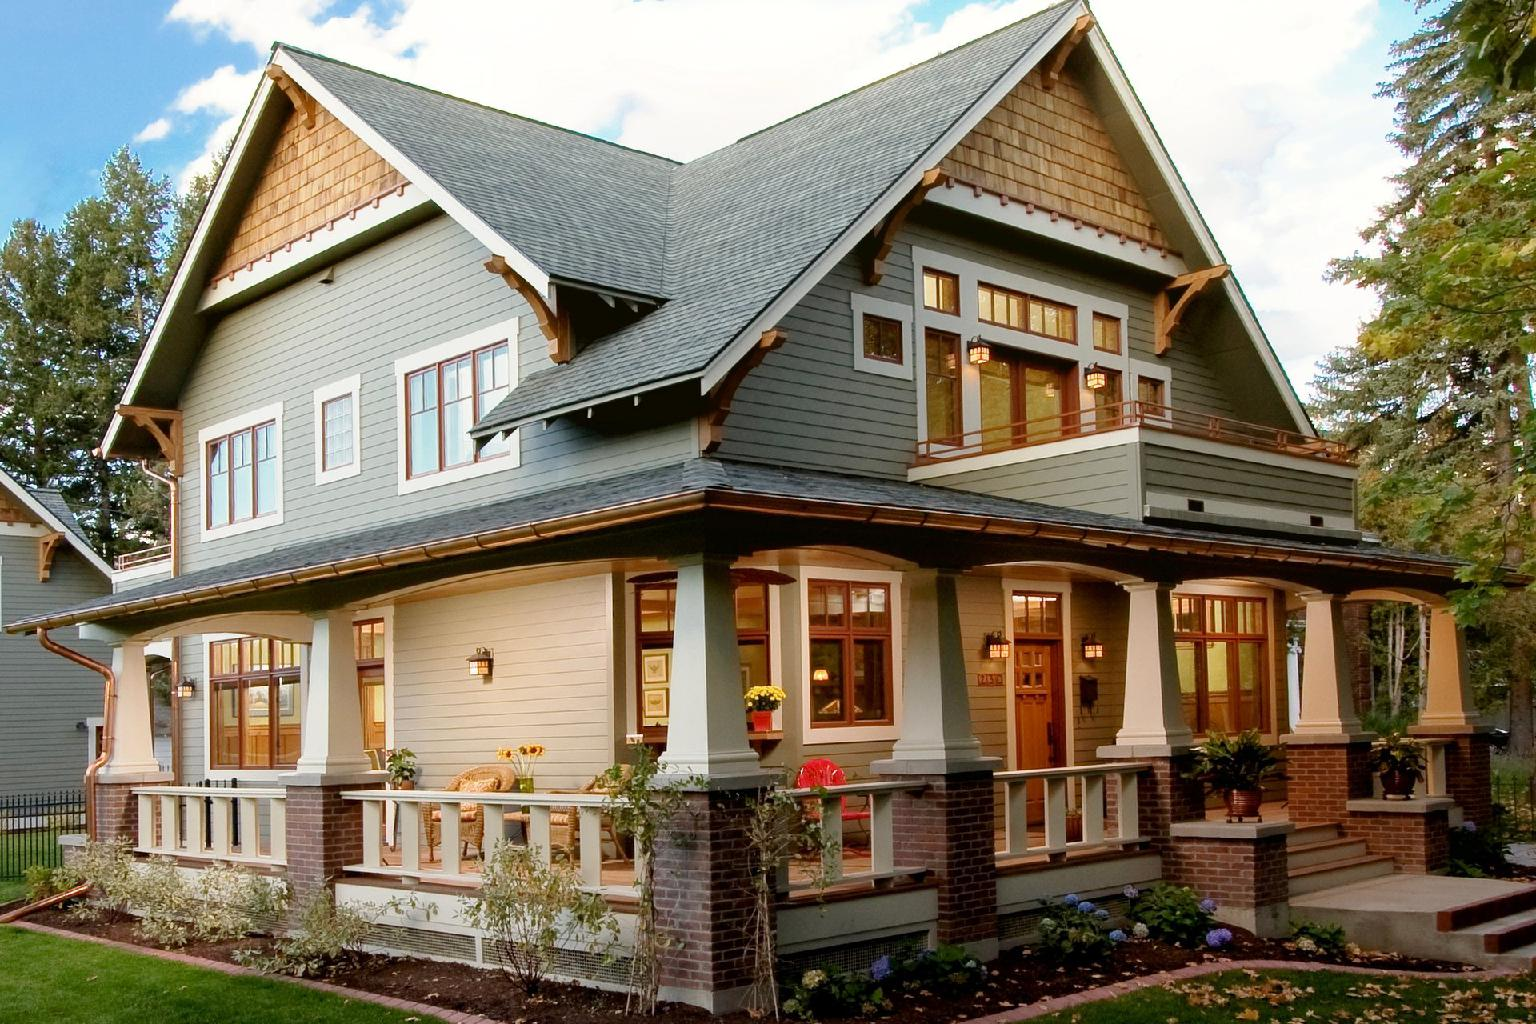 Best Kitchen Gallery: 21 Craftsman Style House Ideas With Bedroom And Kitchen Included of Craftsman Design Homes  on rachelxblog.com